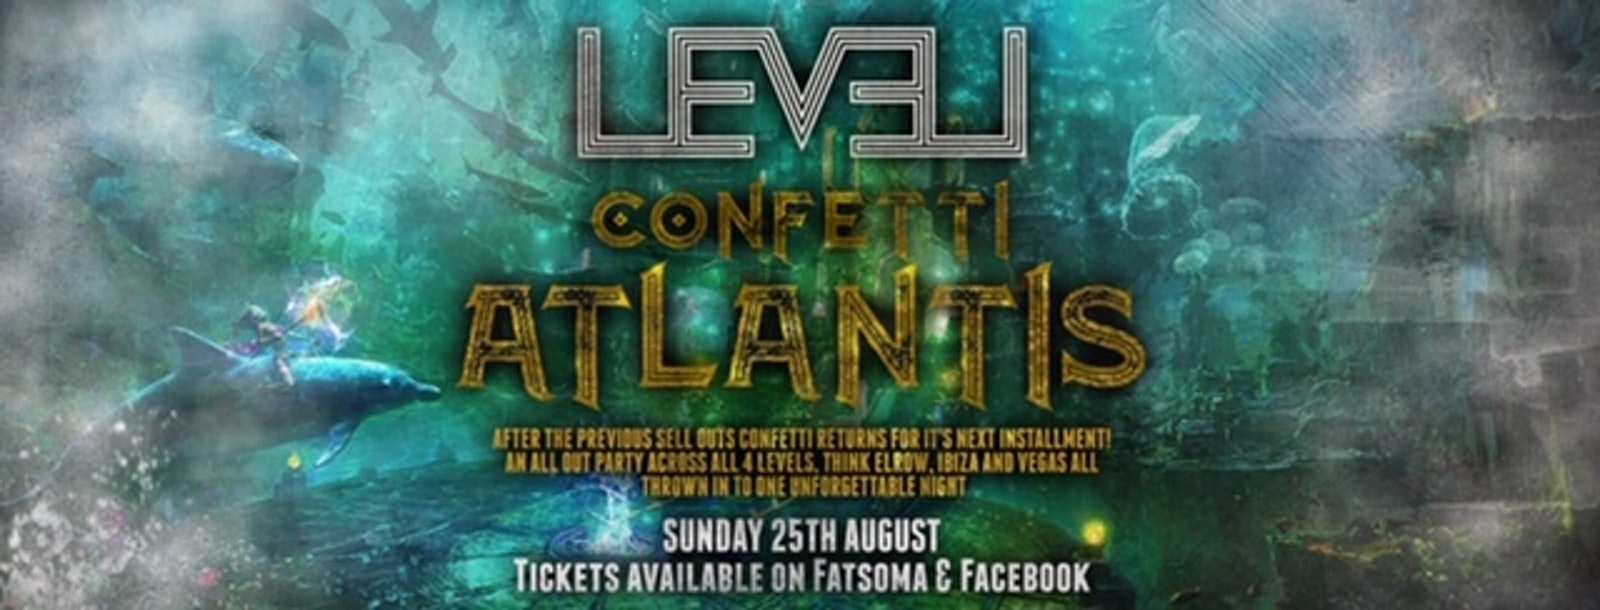 Confetti Take over – Atlantis